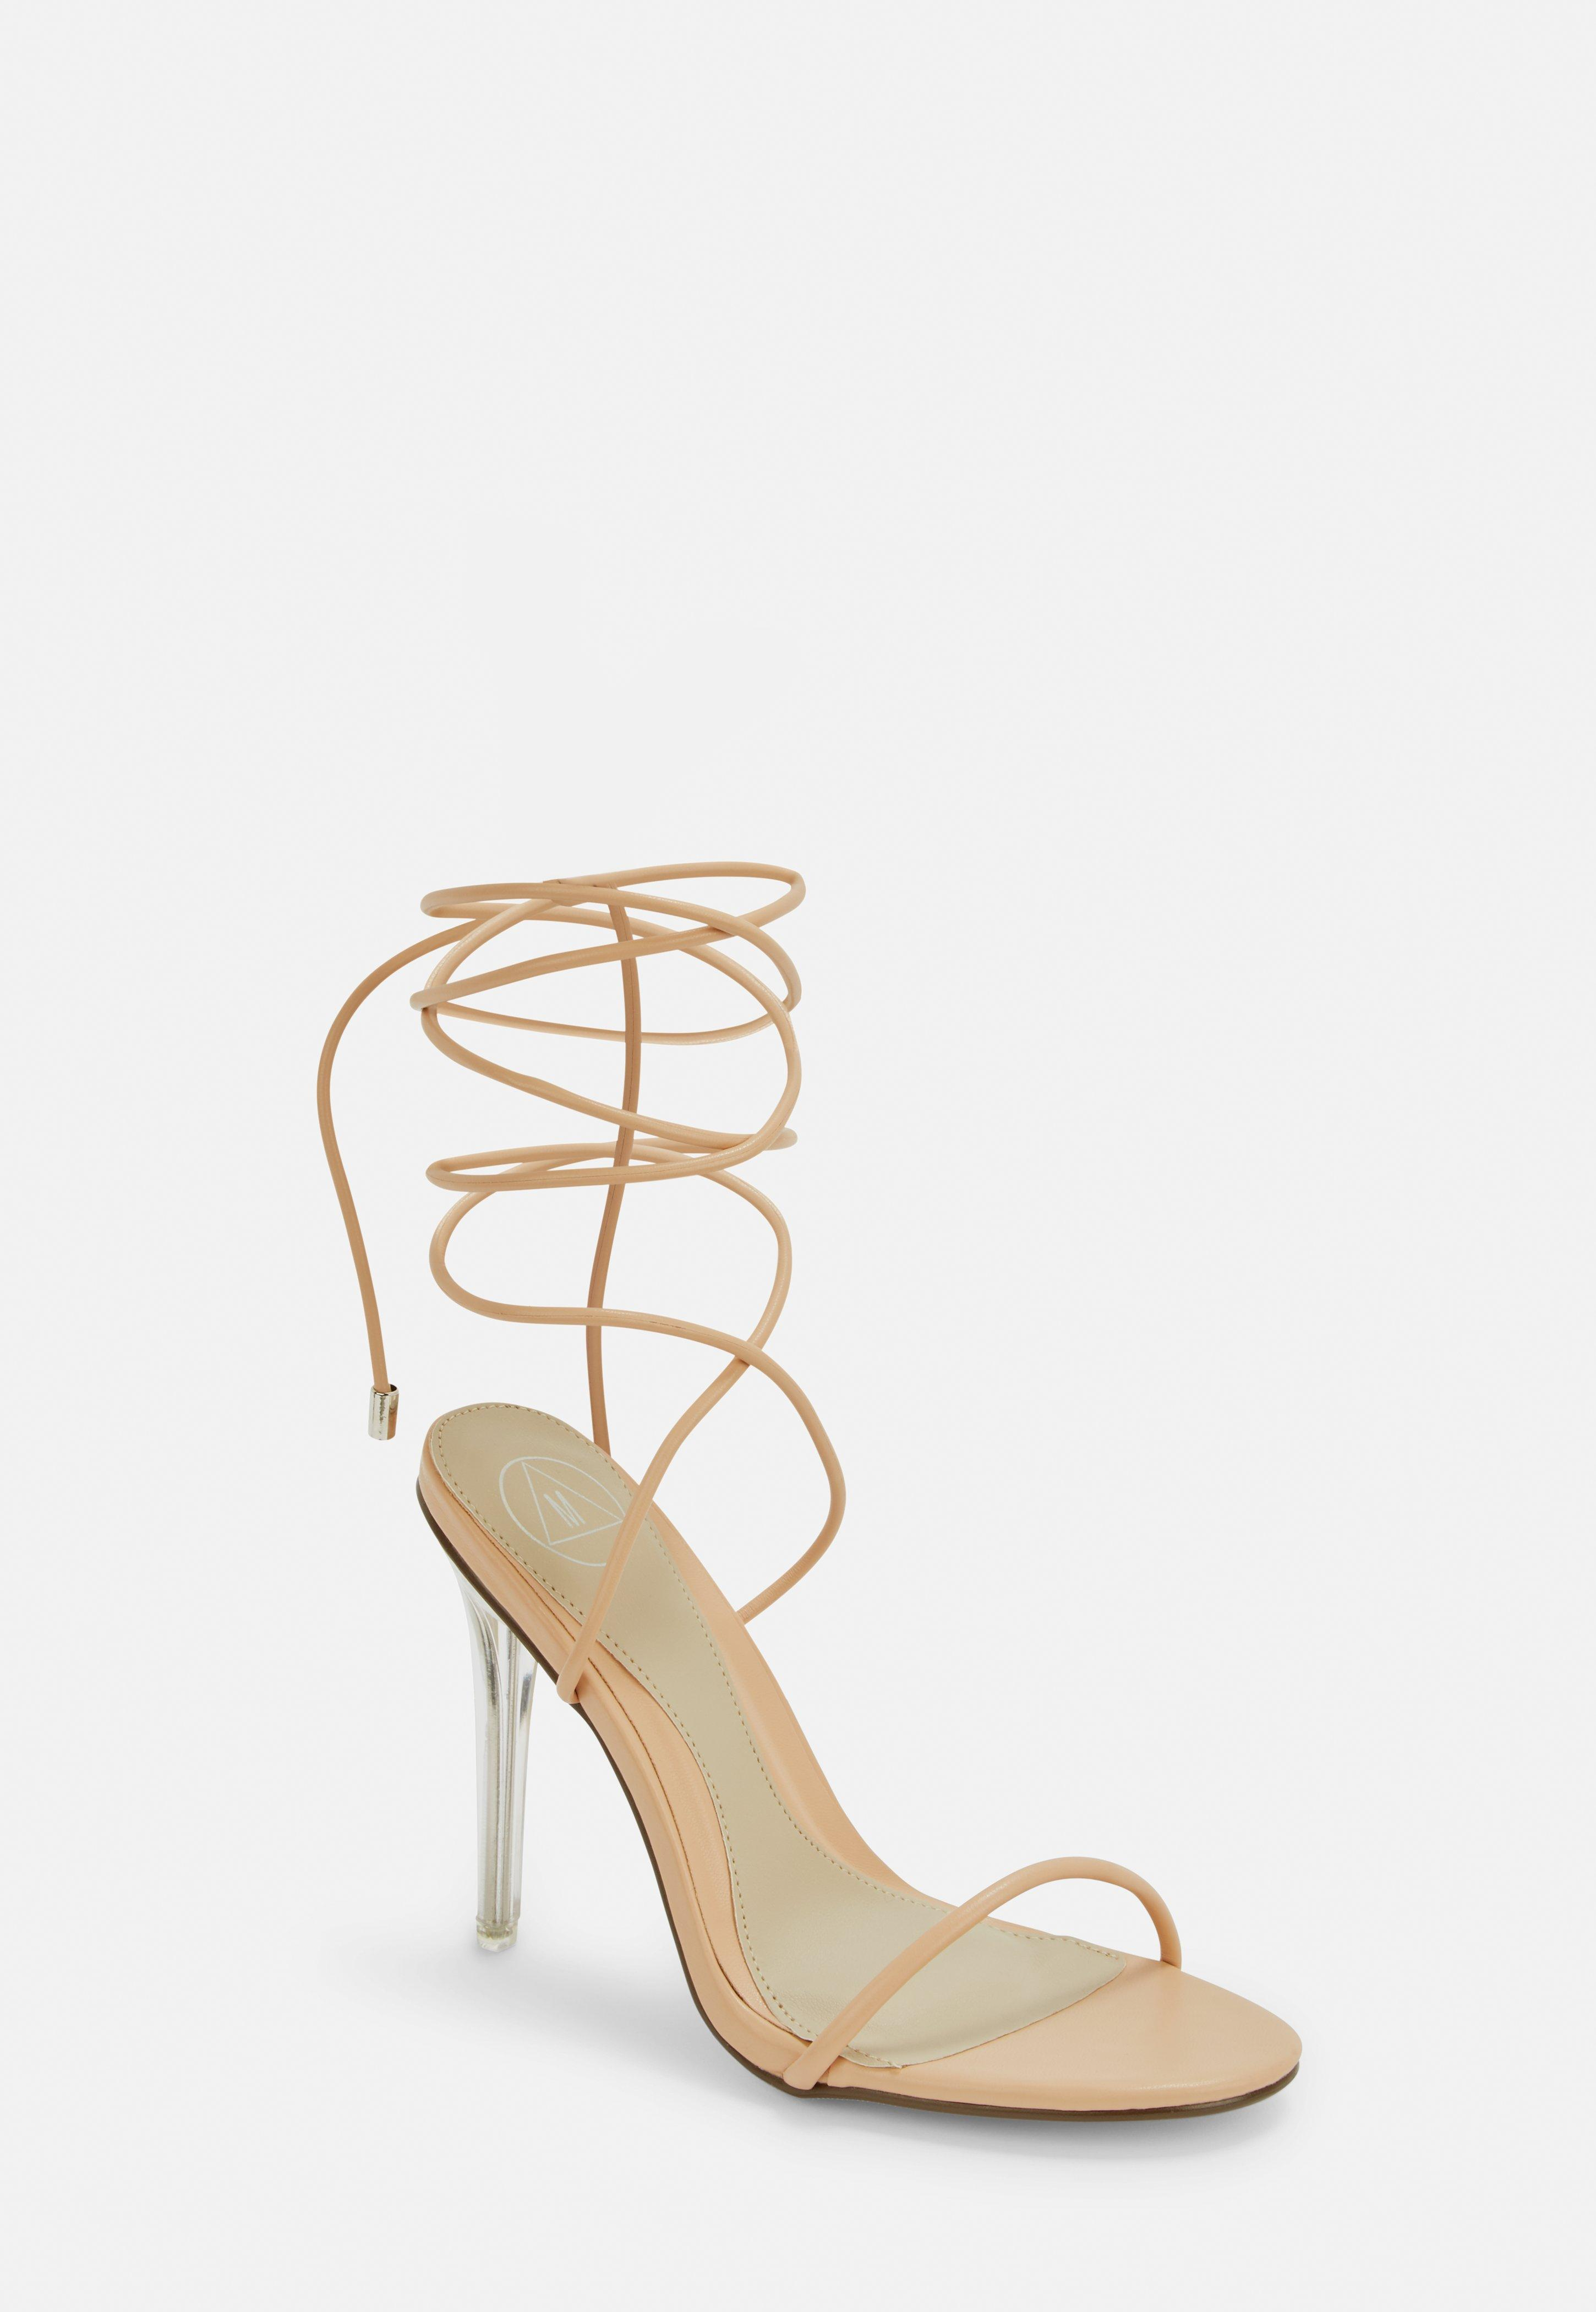 Chaussure femme   Achat chaussures en ligne - Missguided 8ba96fba42a9